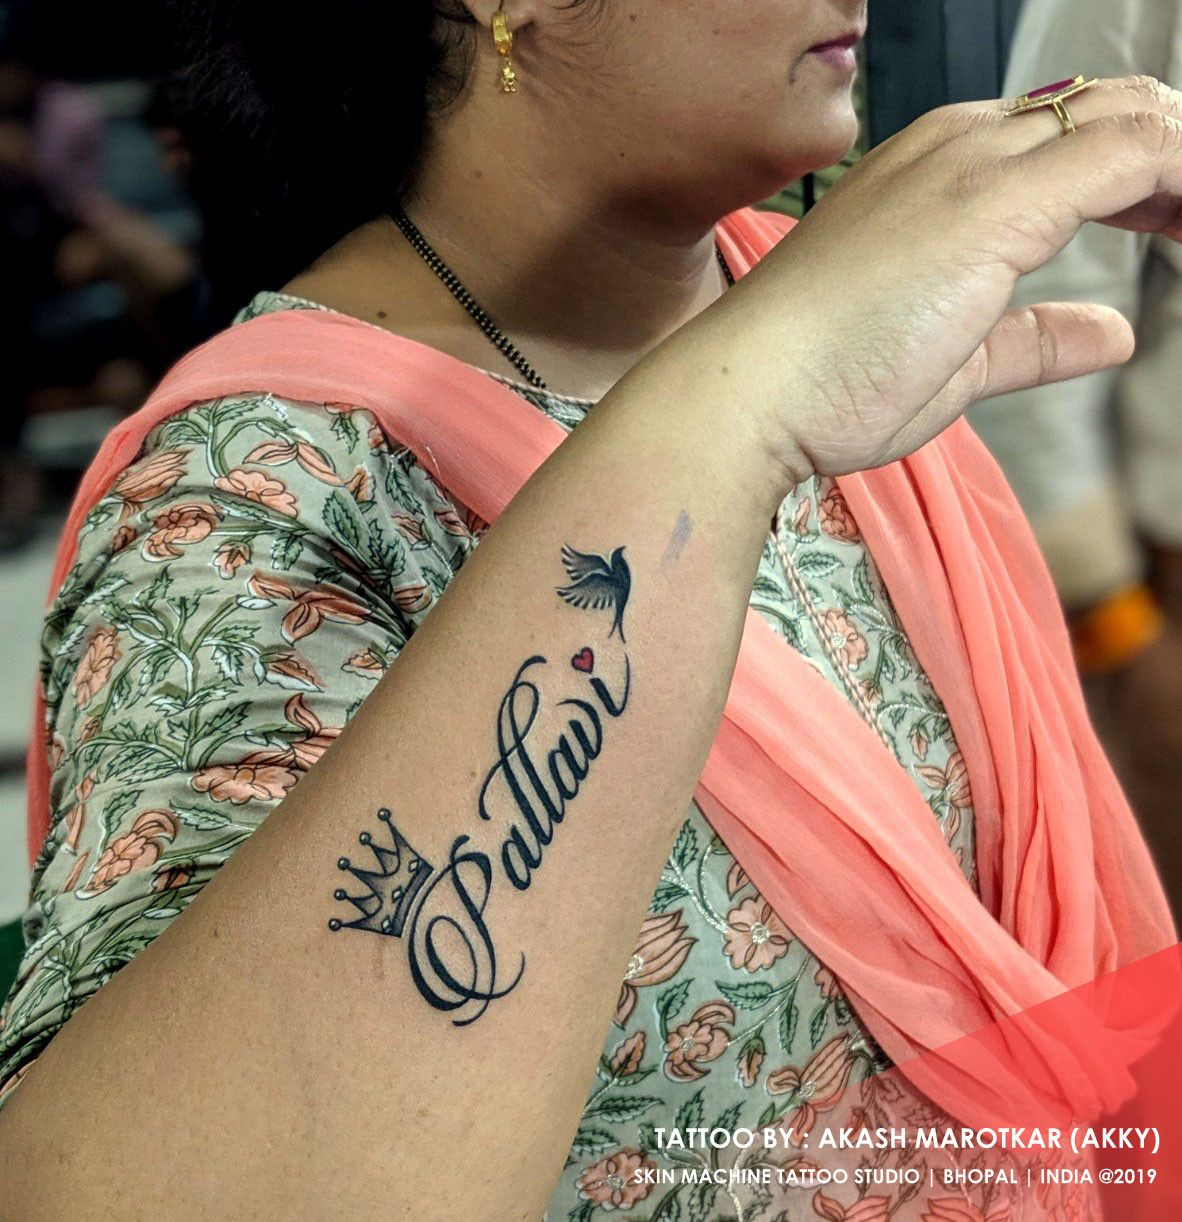 Name tattoo beautifully designed and done by Akash